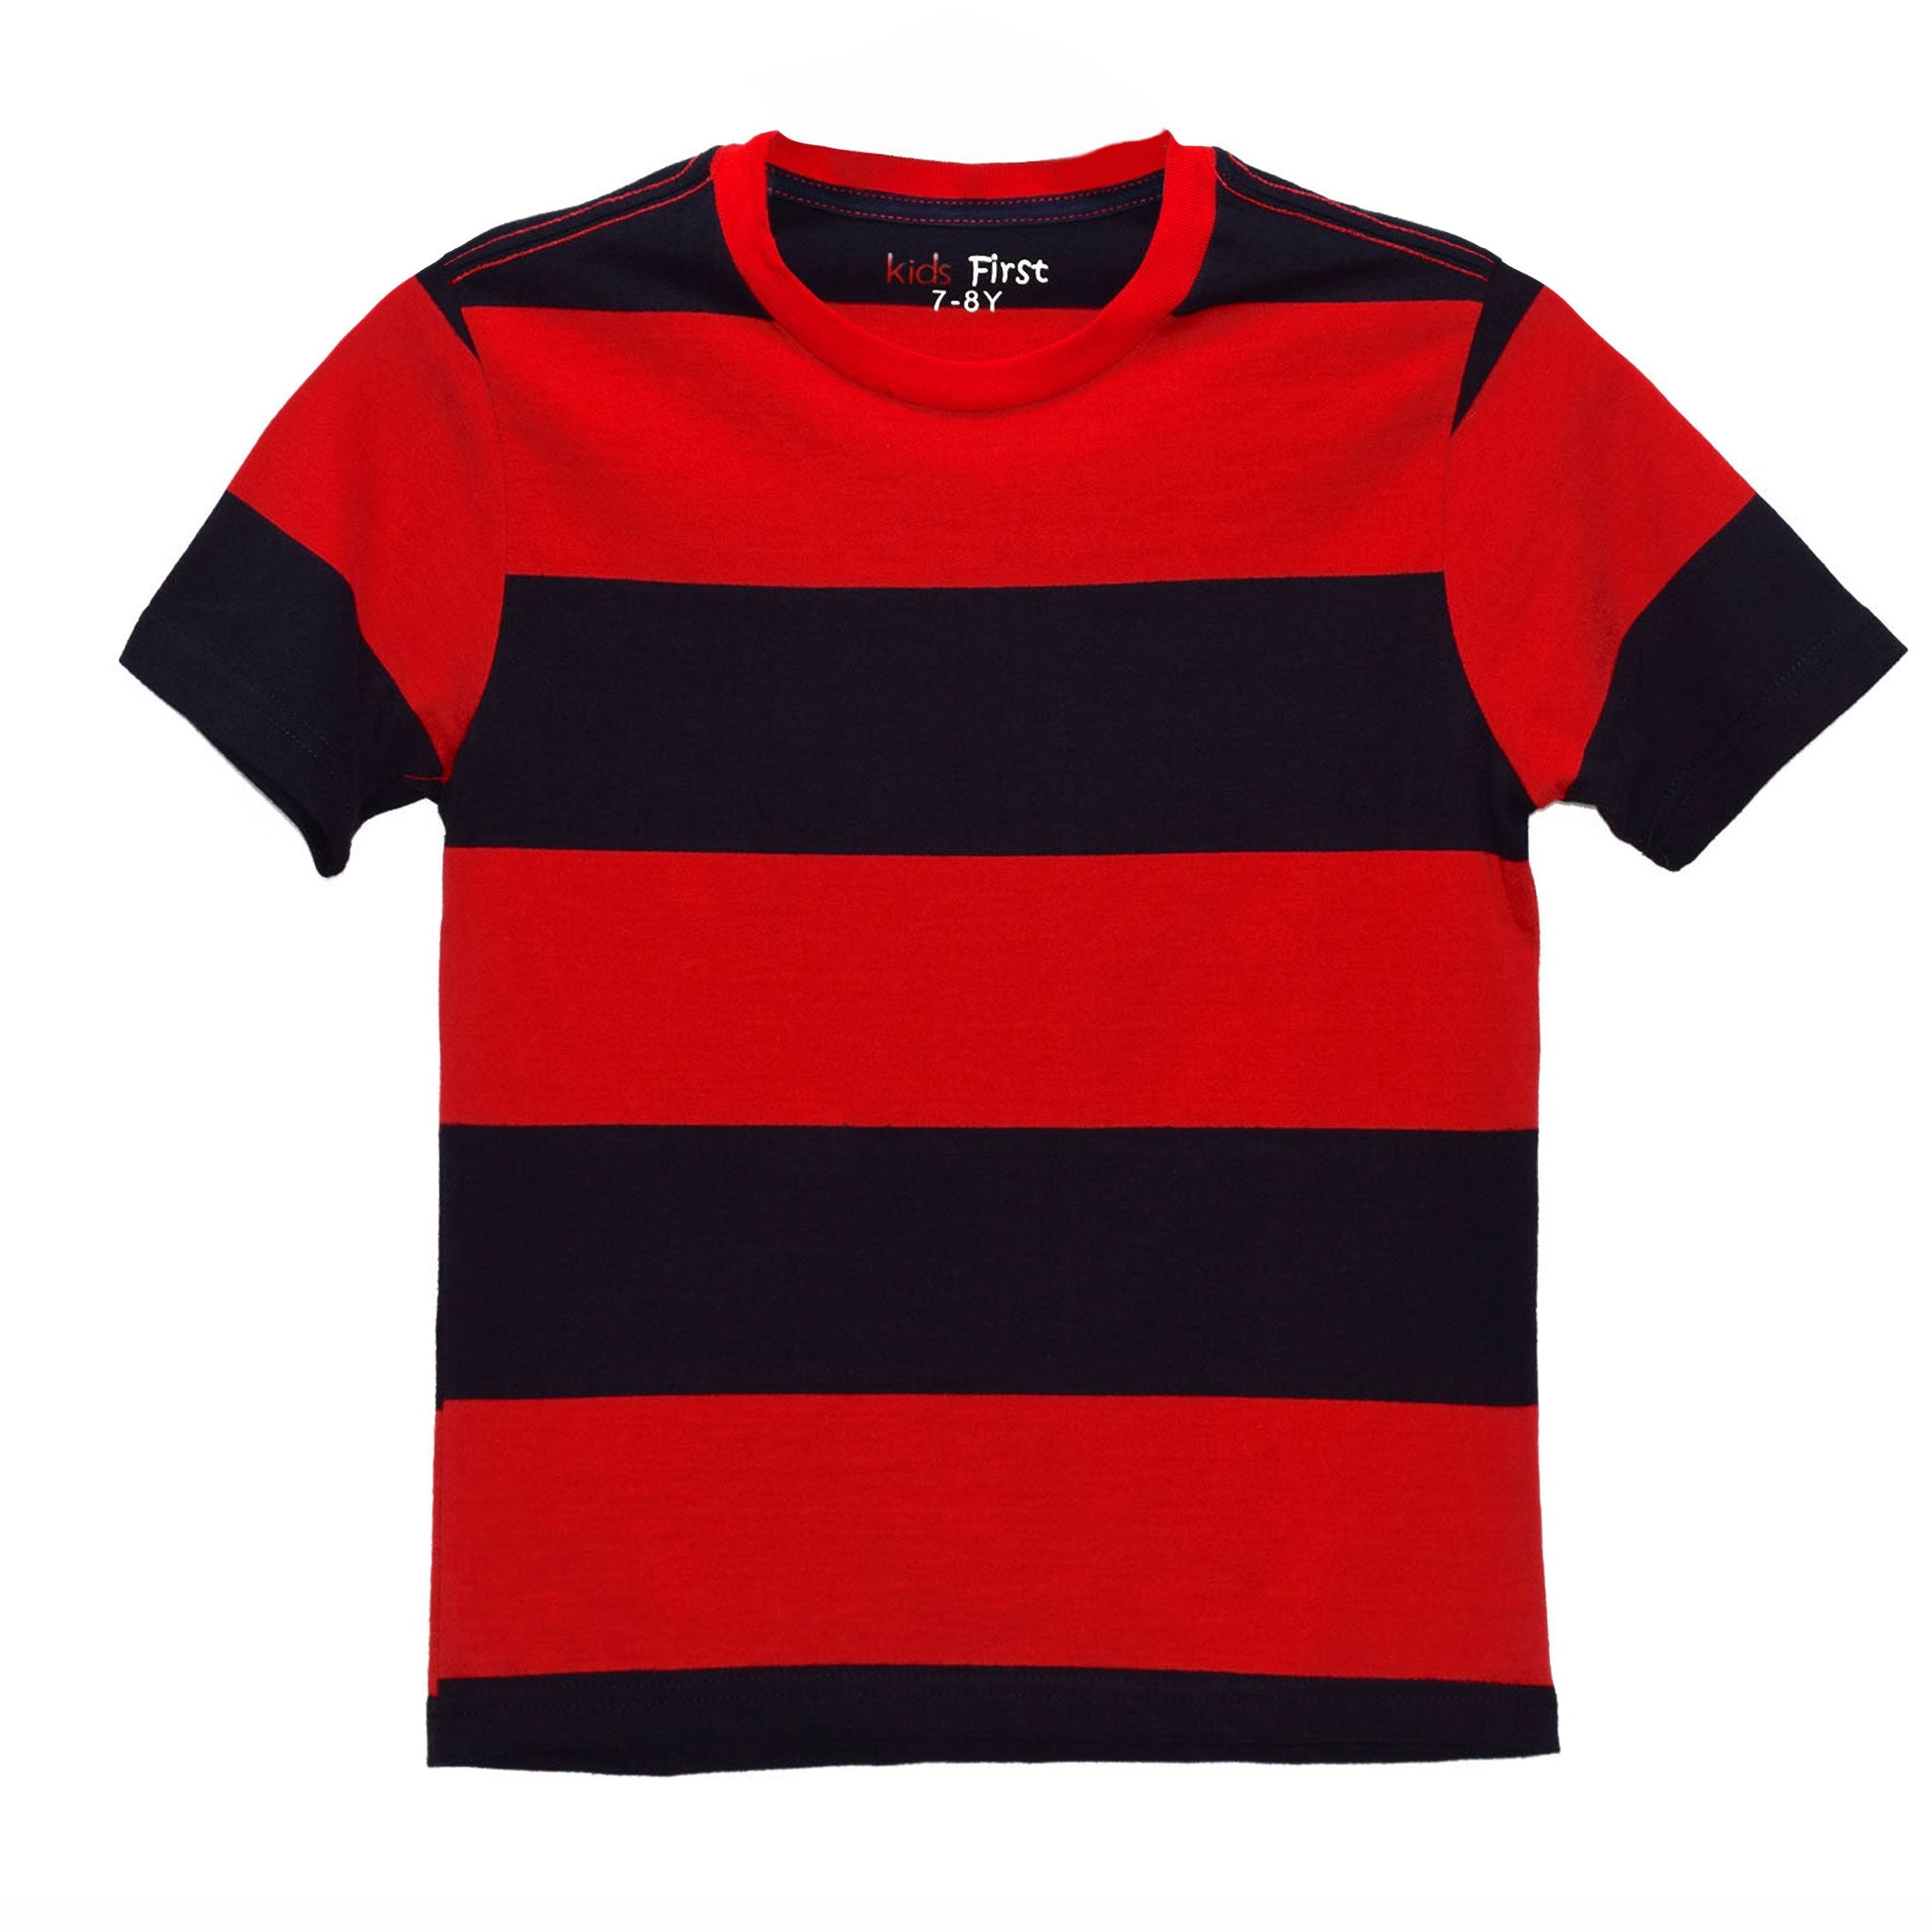 BOYS' S/S YD TEE - NAVY / RED